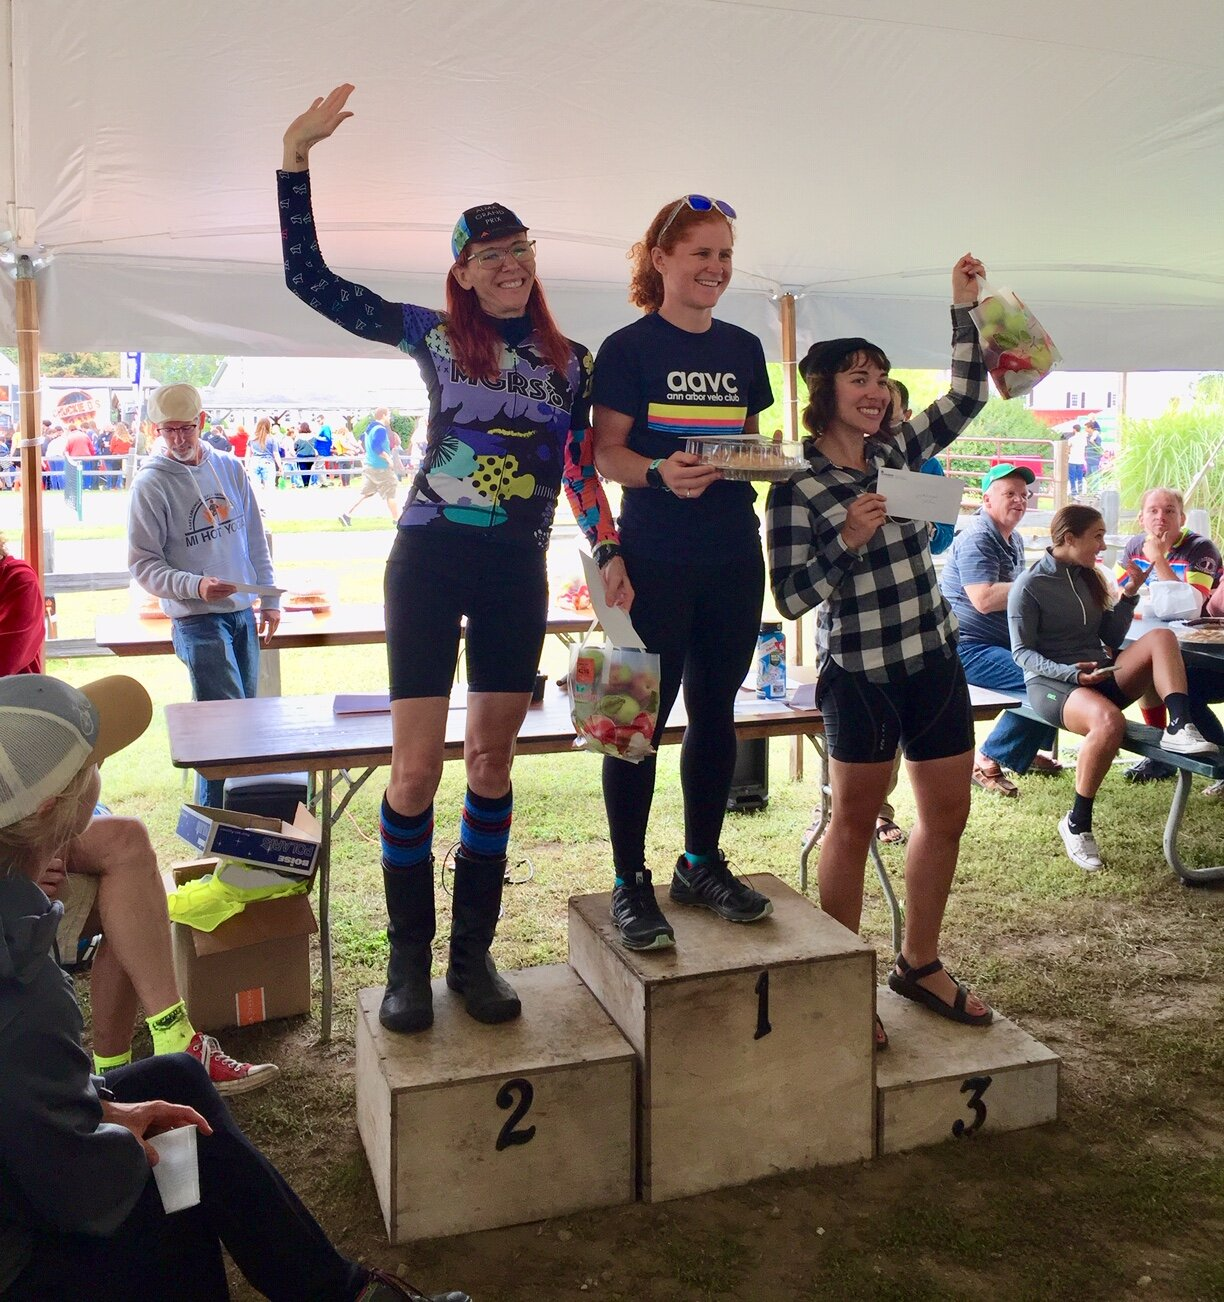 The SHORT COURSE Women's Podium: (from left to right) Tory Cane, Kari Alsager & Emily Mileski